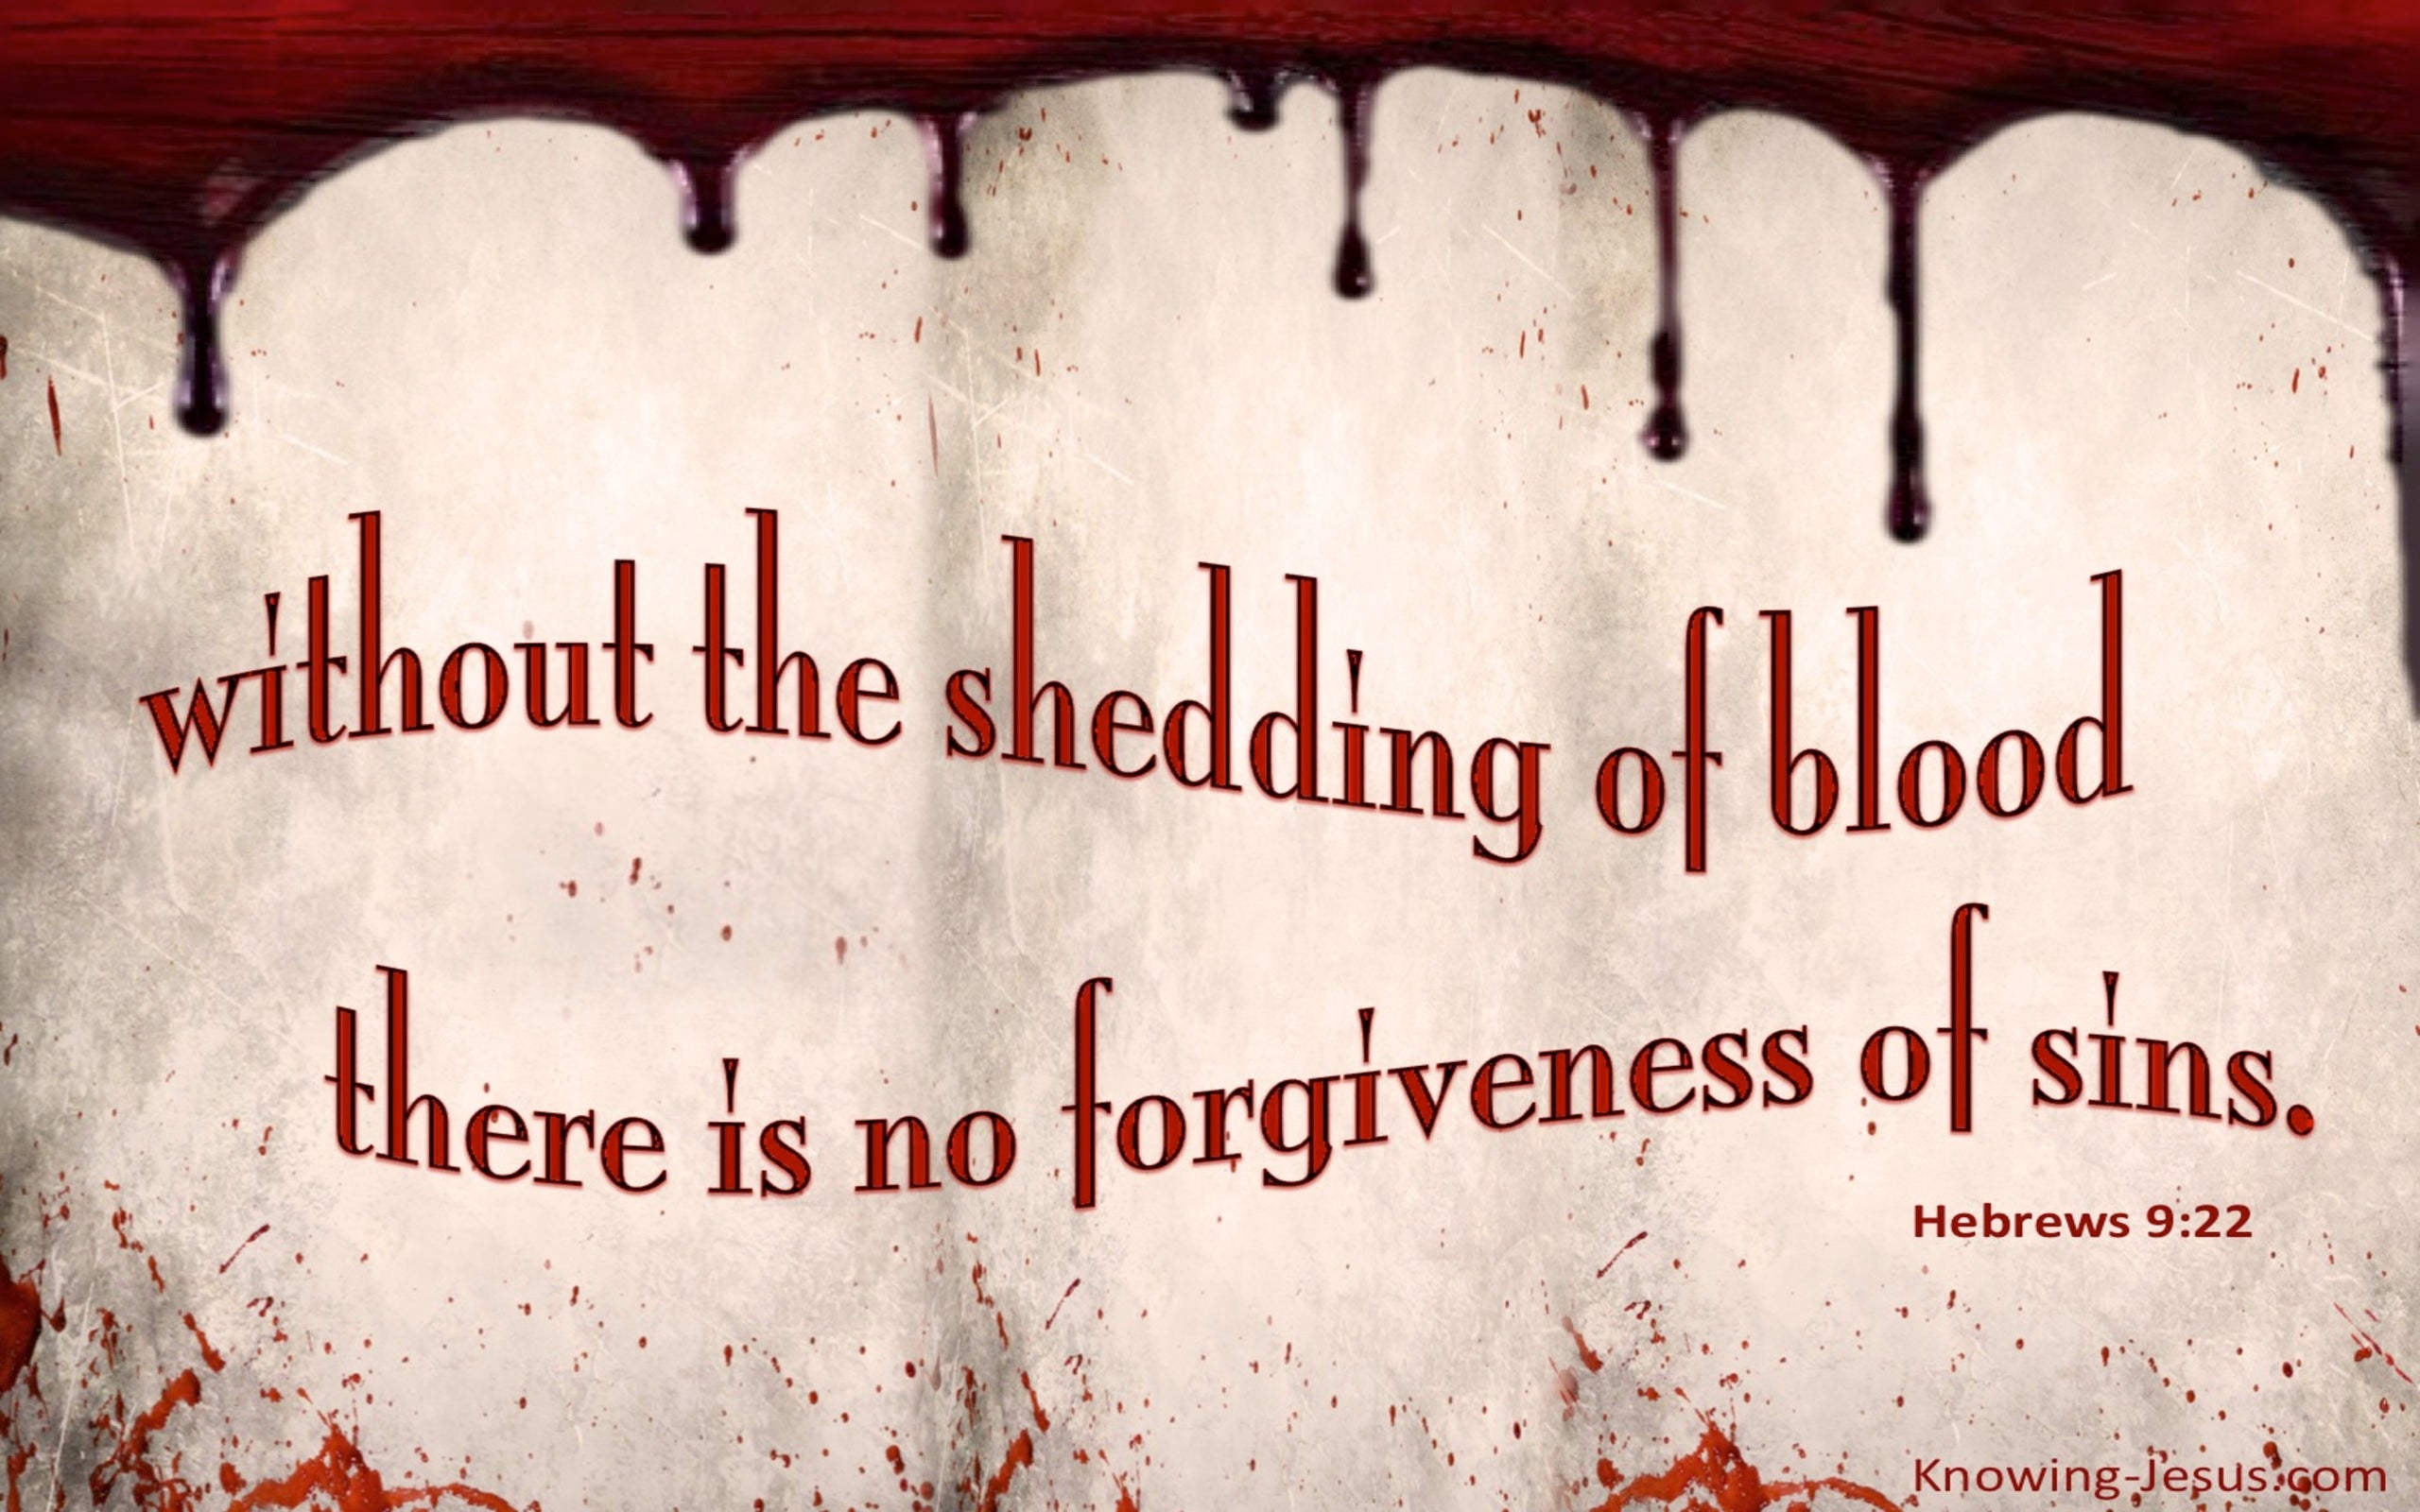 Hebrews 9:22 No Forgiveness Without The Shedding of Blood (beige)